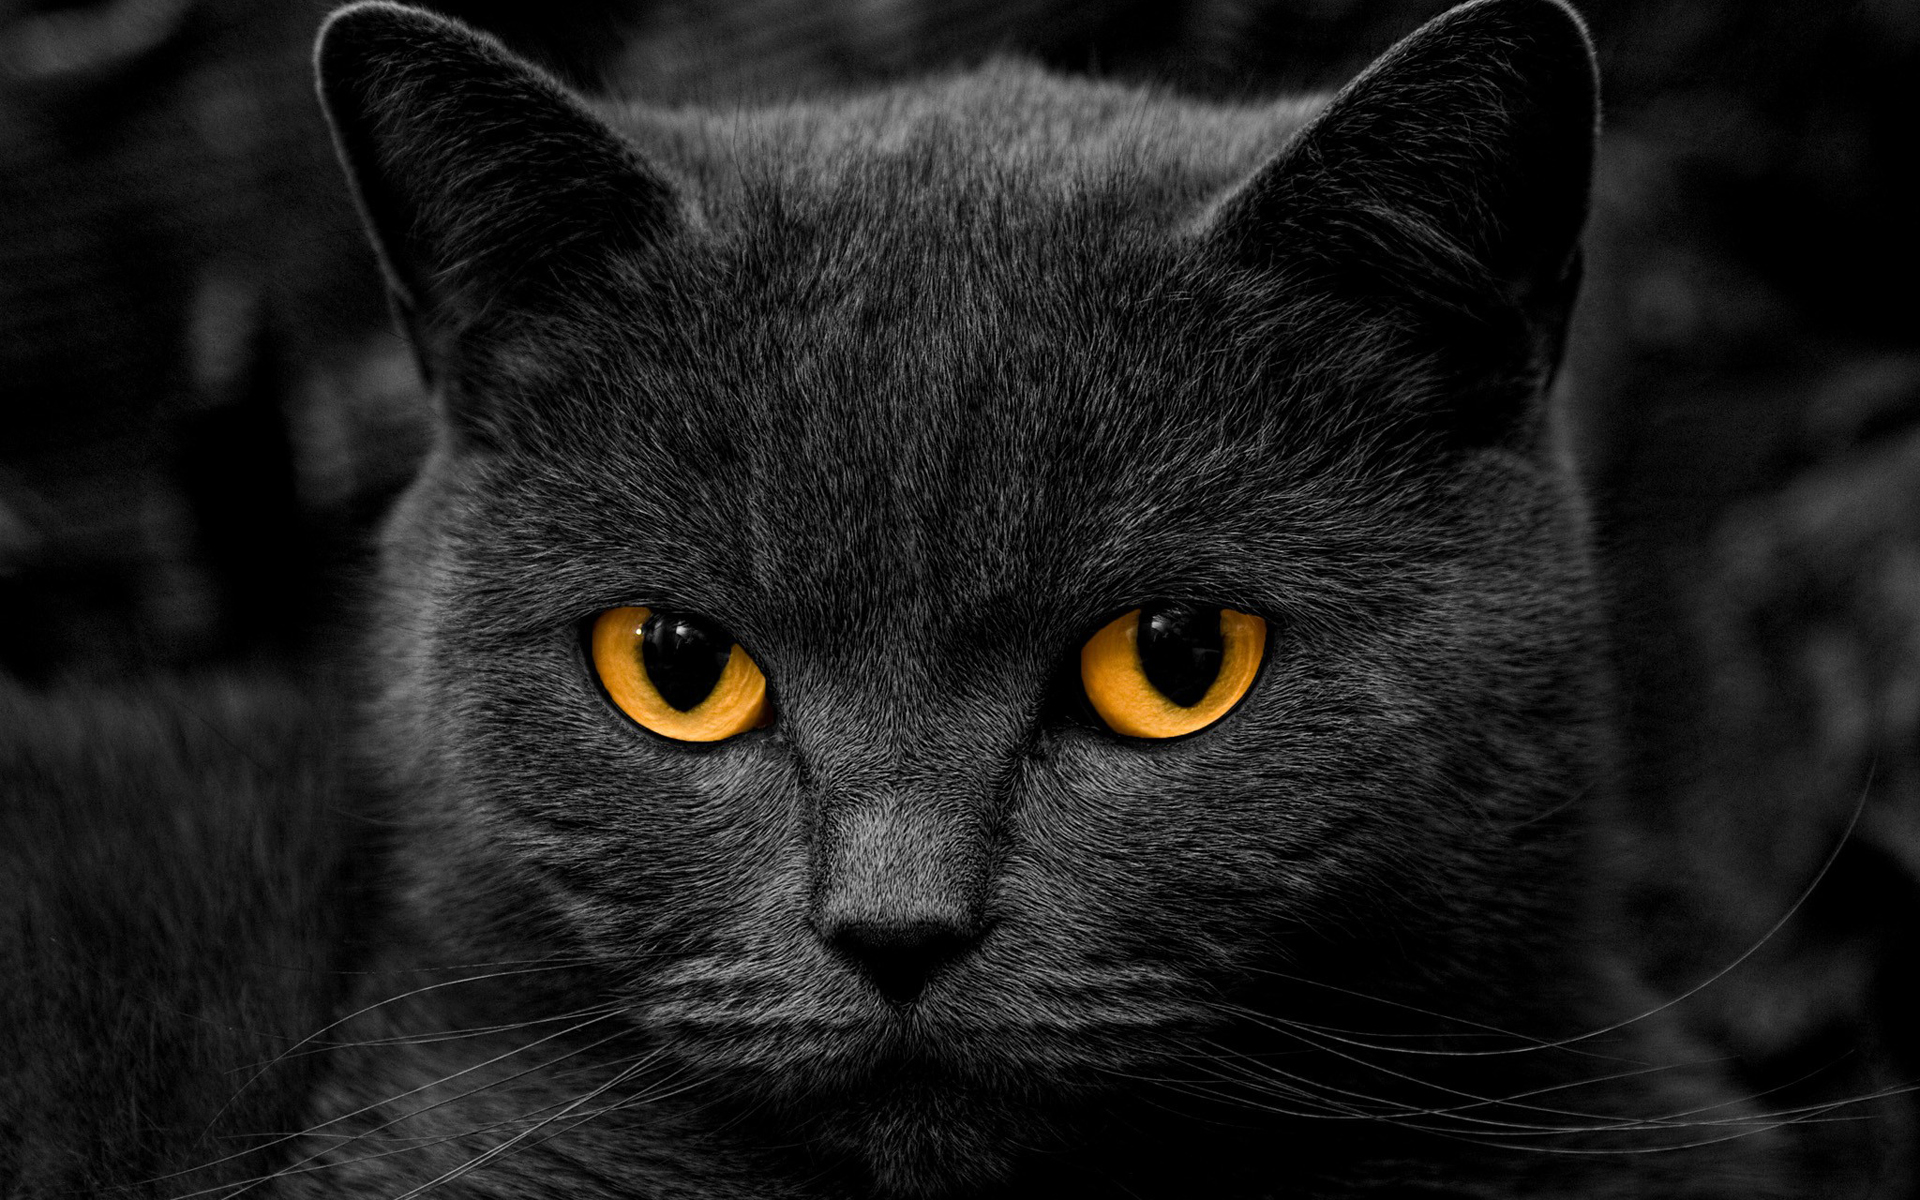 awesome black cat wallpaper 24147 1920x1200 px ~ hdwallsource